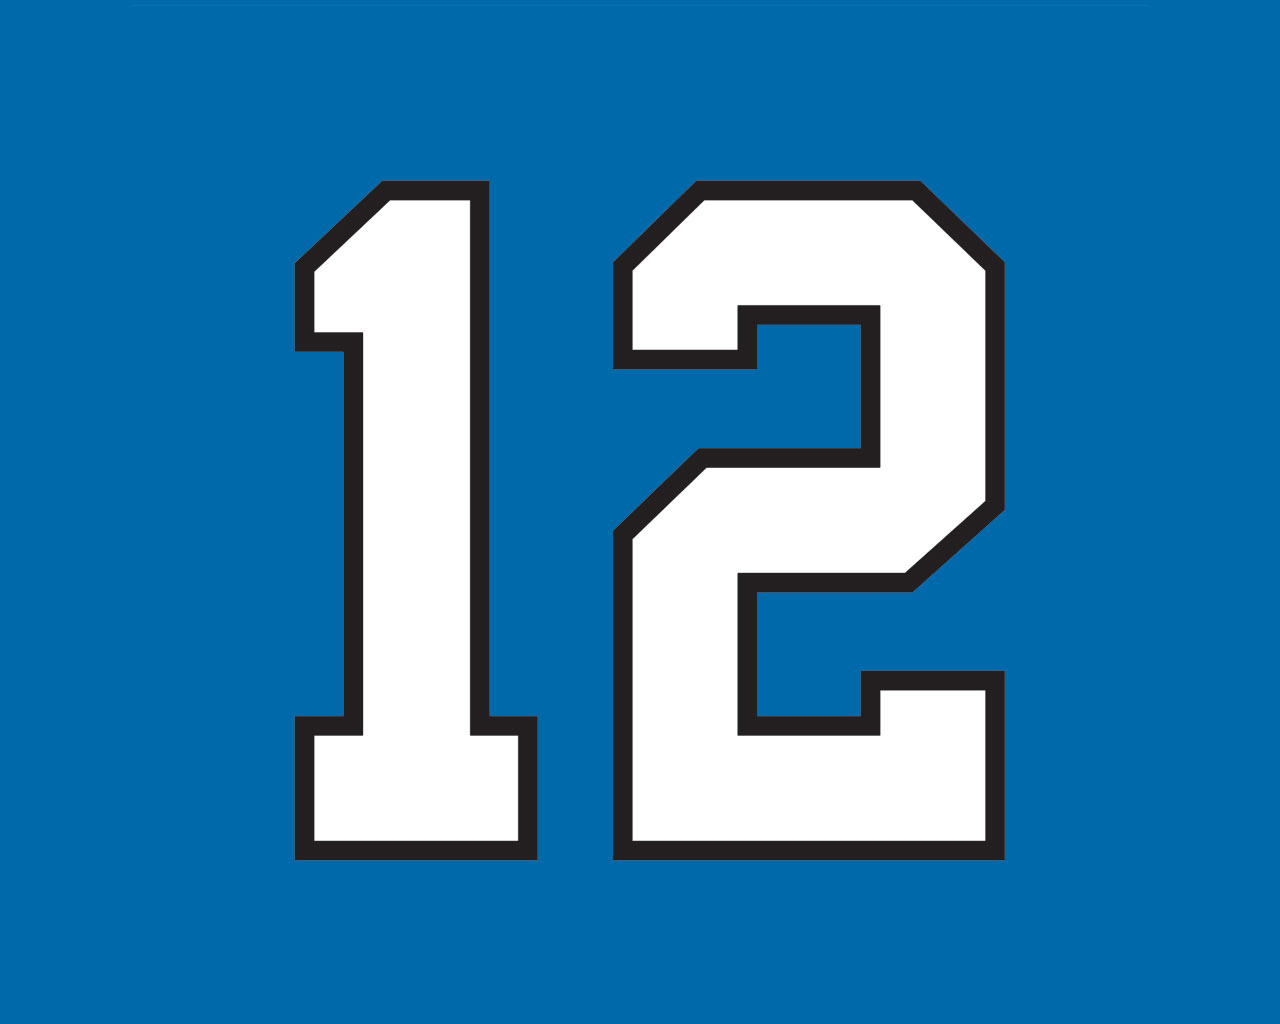 12th Man Wallpaper